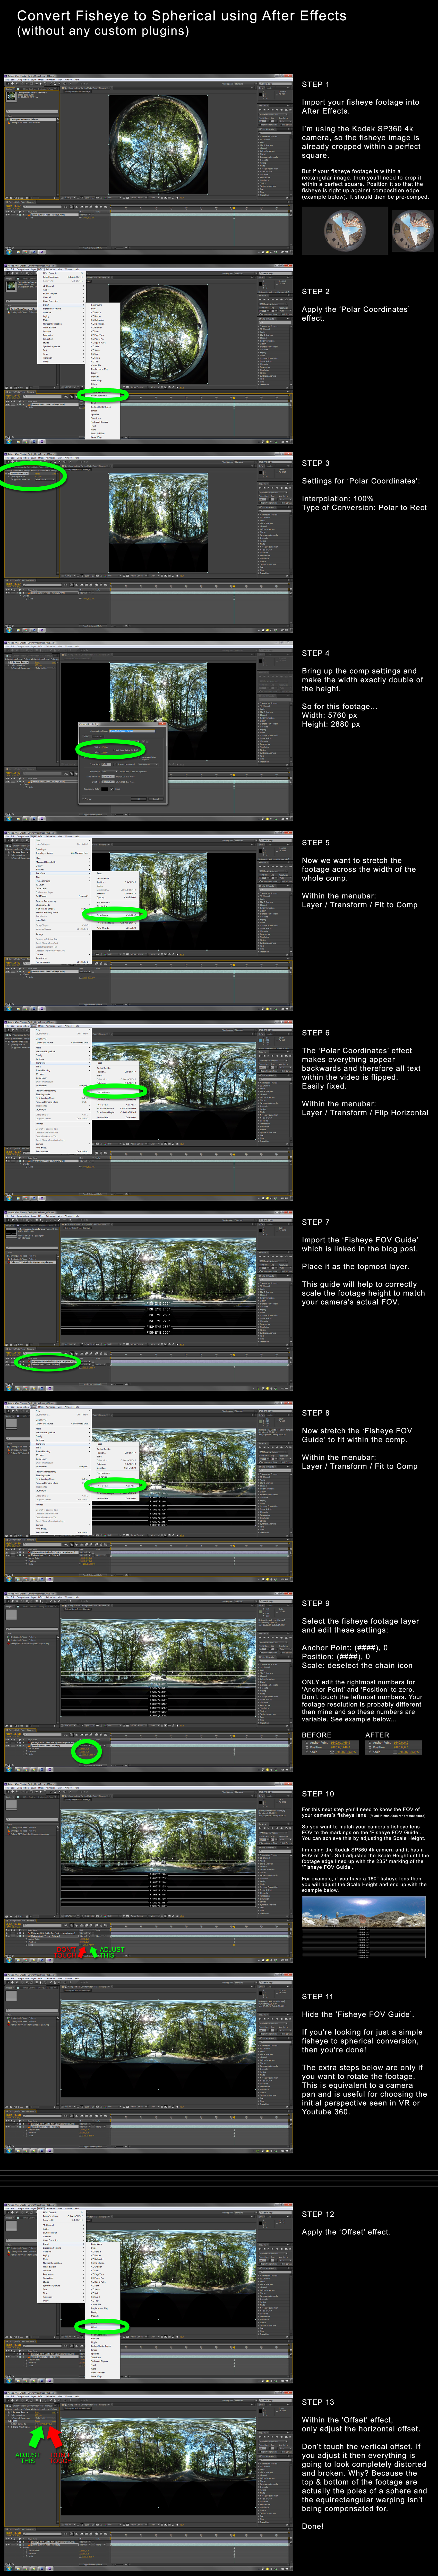 Fisheye to Spherical Conversion using After Effects | The